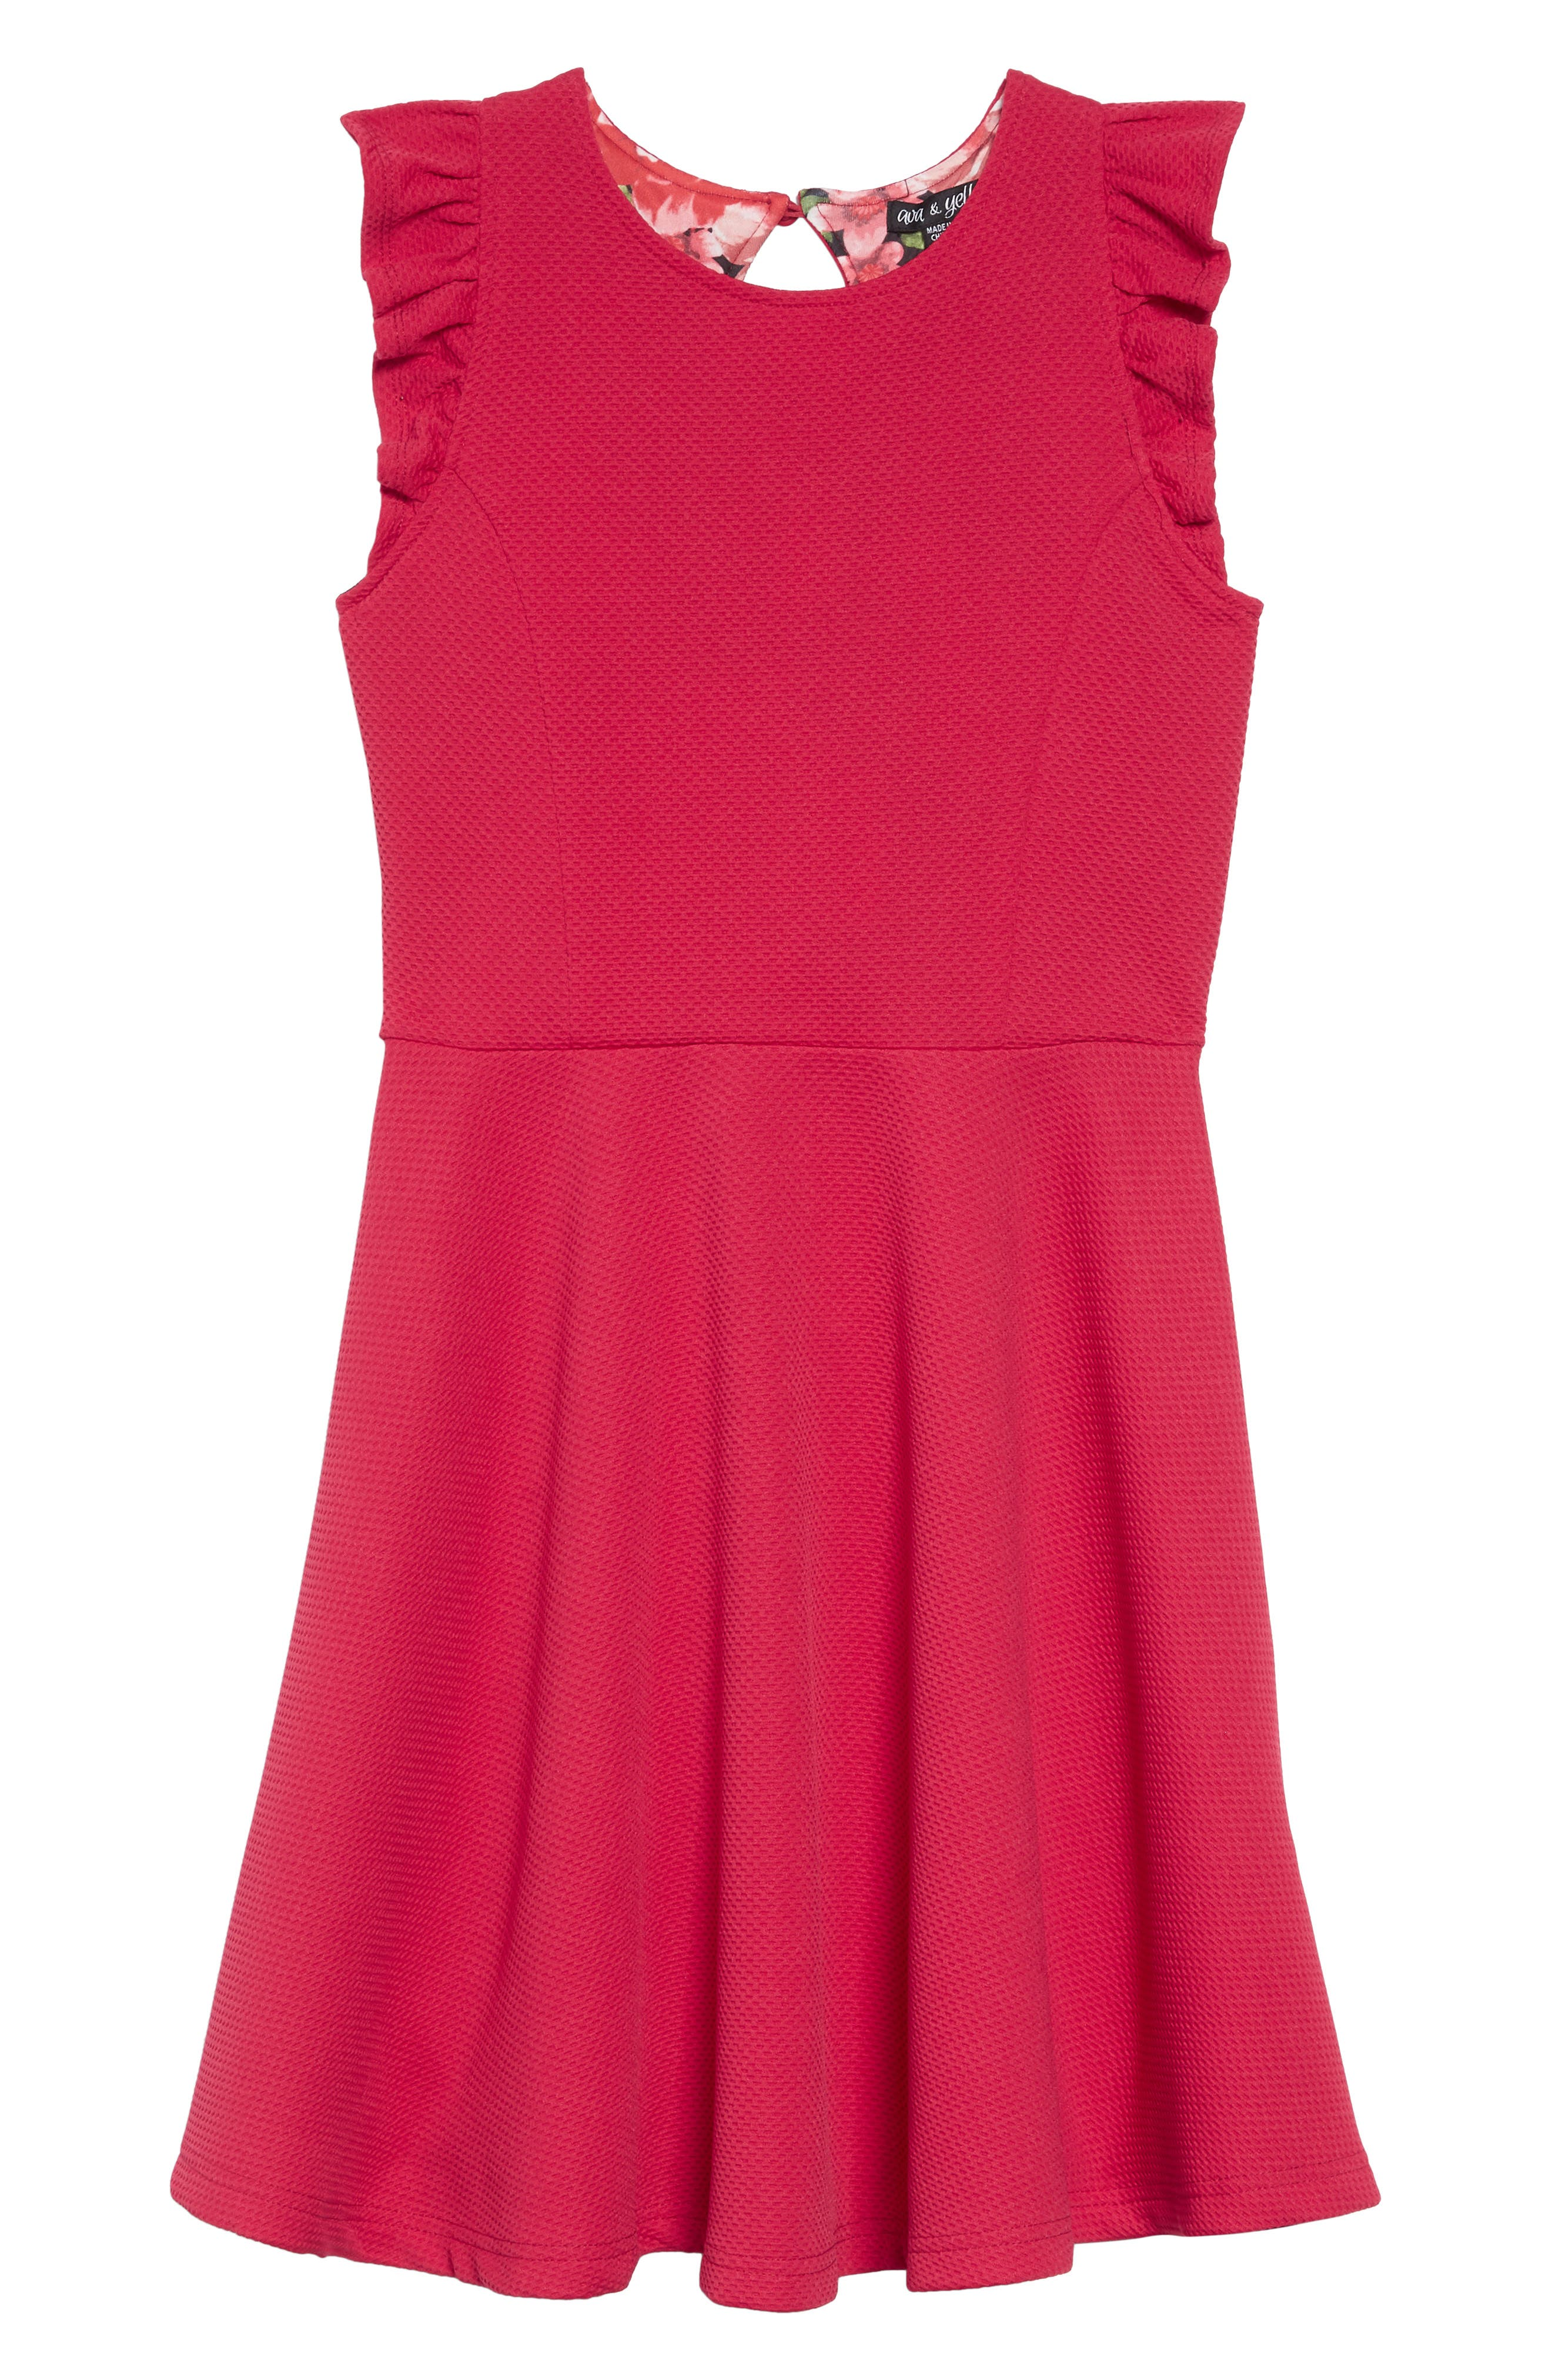 Textured with Print Lining Dress,                             Main thumbnail 1, color,                             610